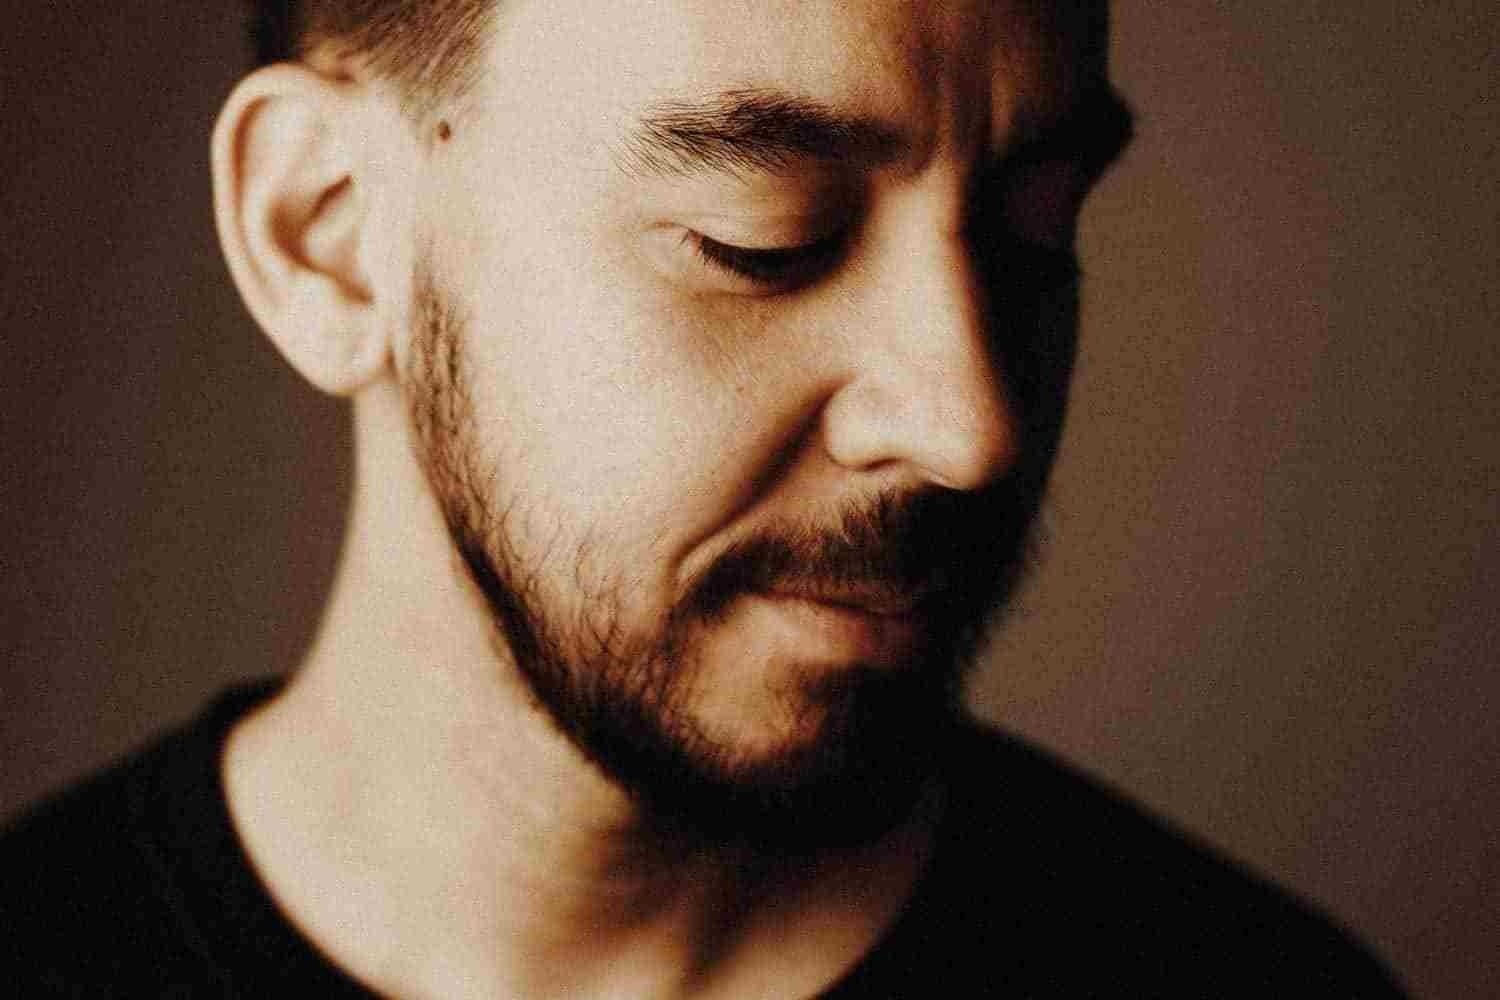 Mike Shinoda has released a deluxe edition of his latest album, featuring two new tracks